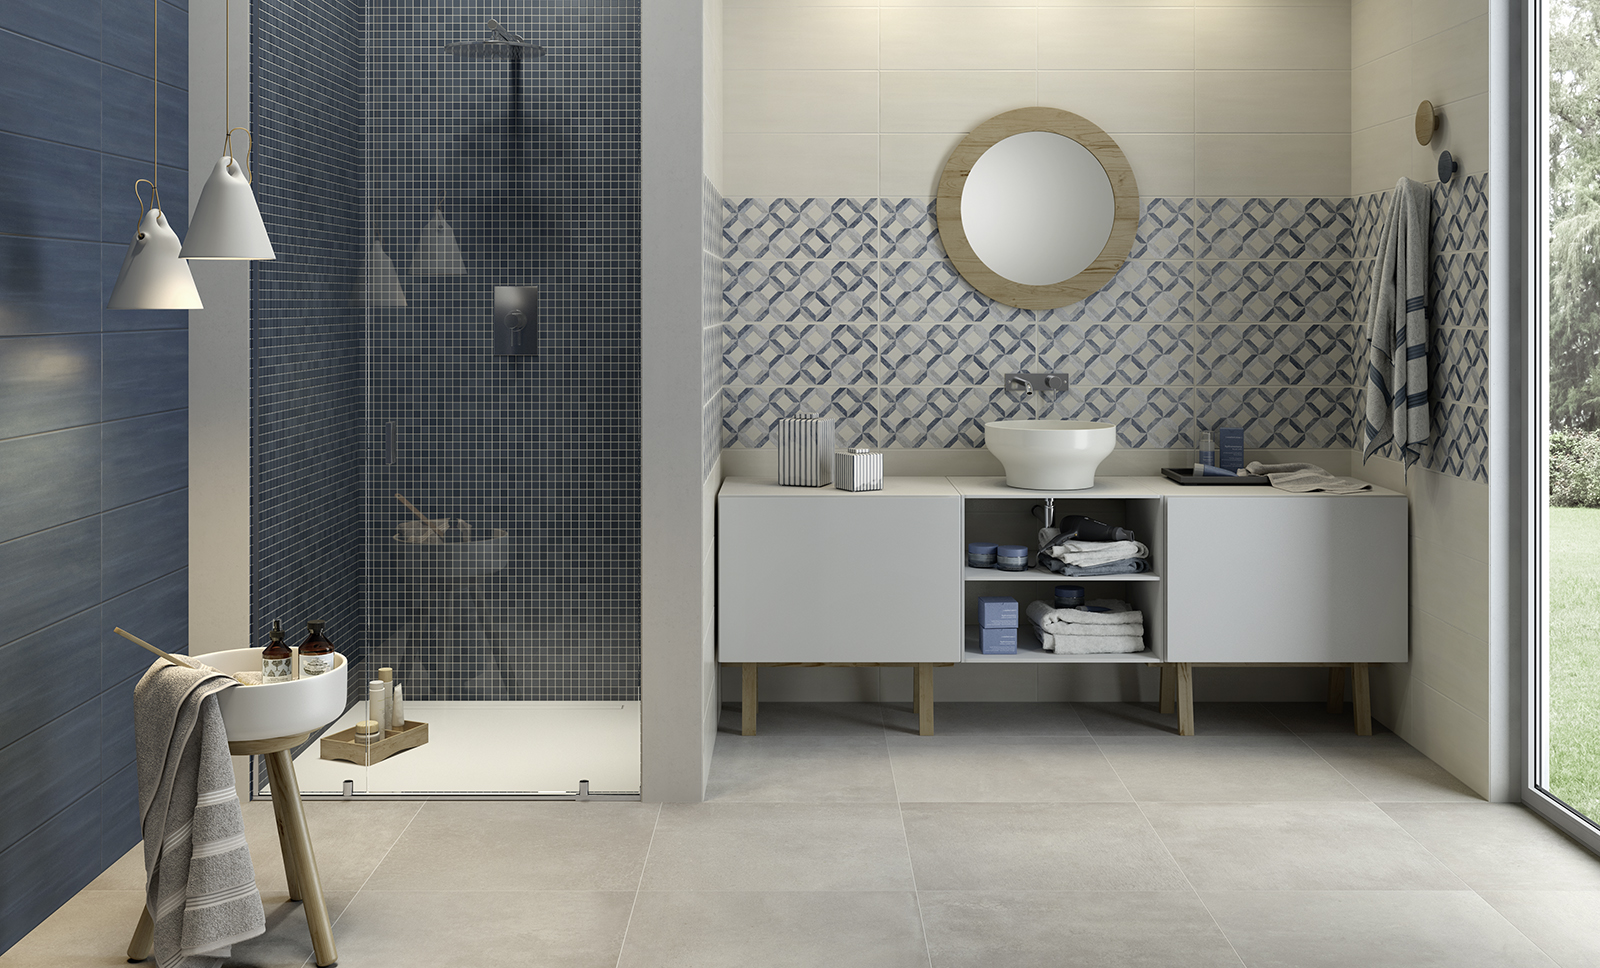 Paint Ceramic Tiles Marazzi_7066 Part 58